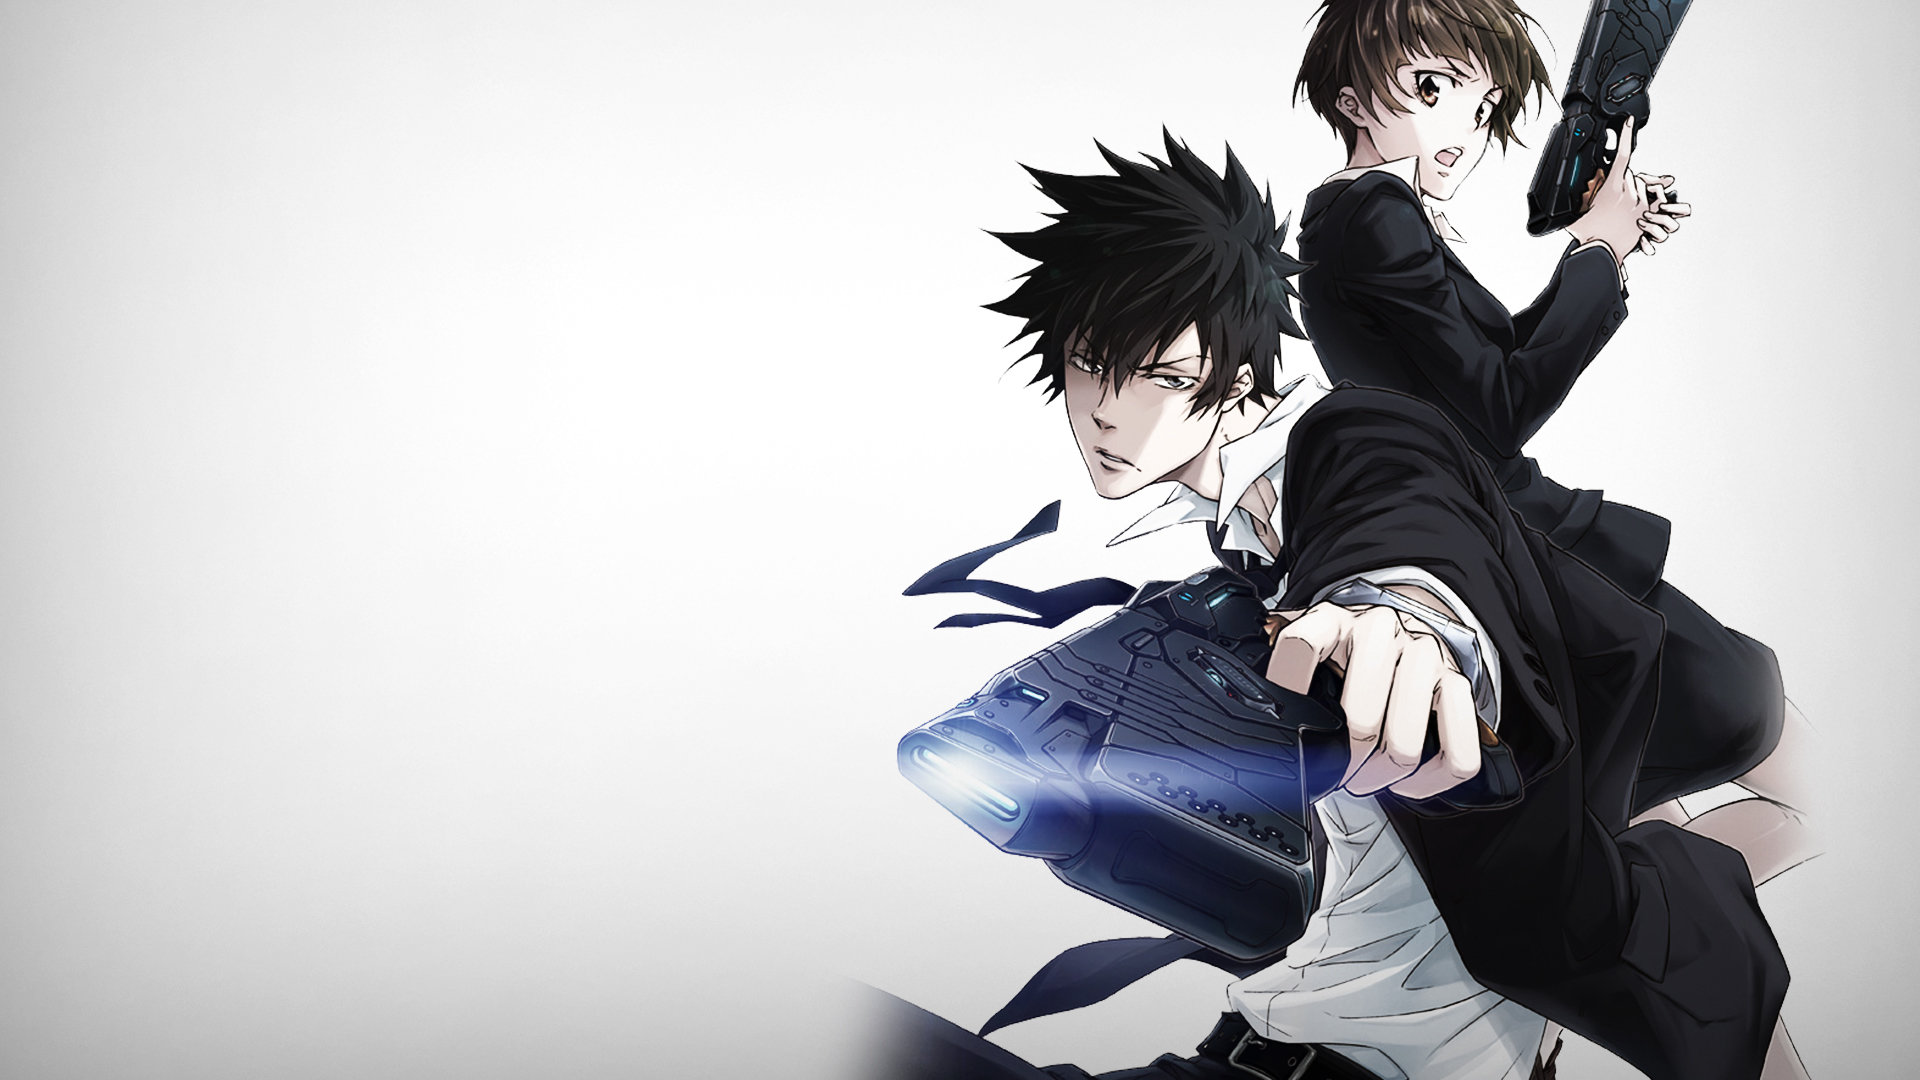 Download full hd Psycho-Pass desktop background ID:451825 for free